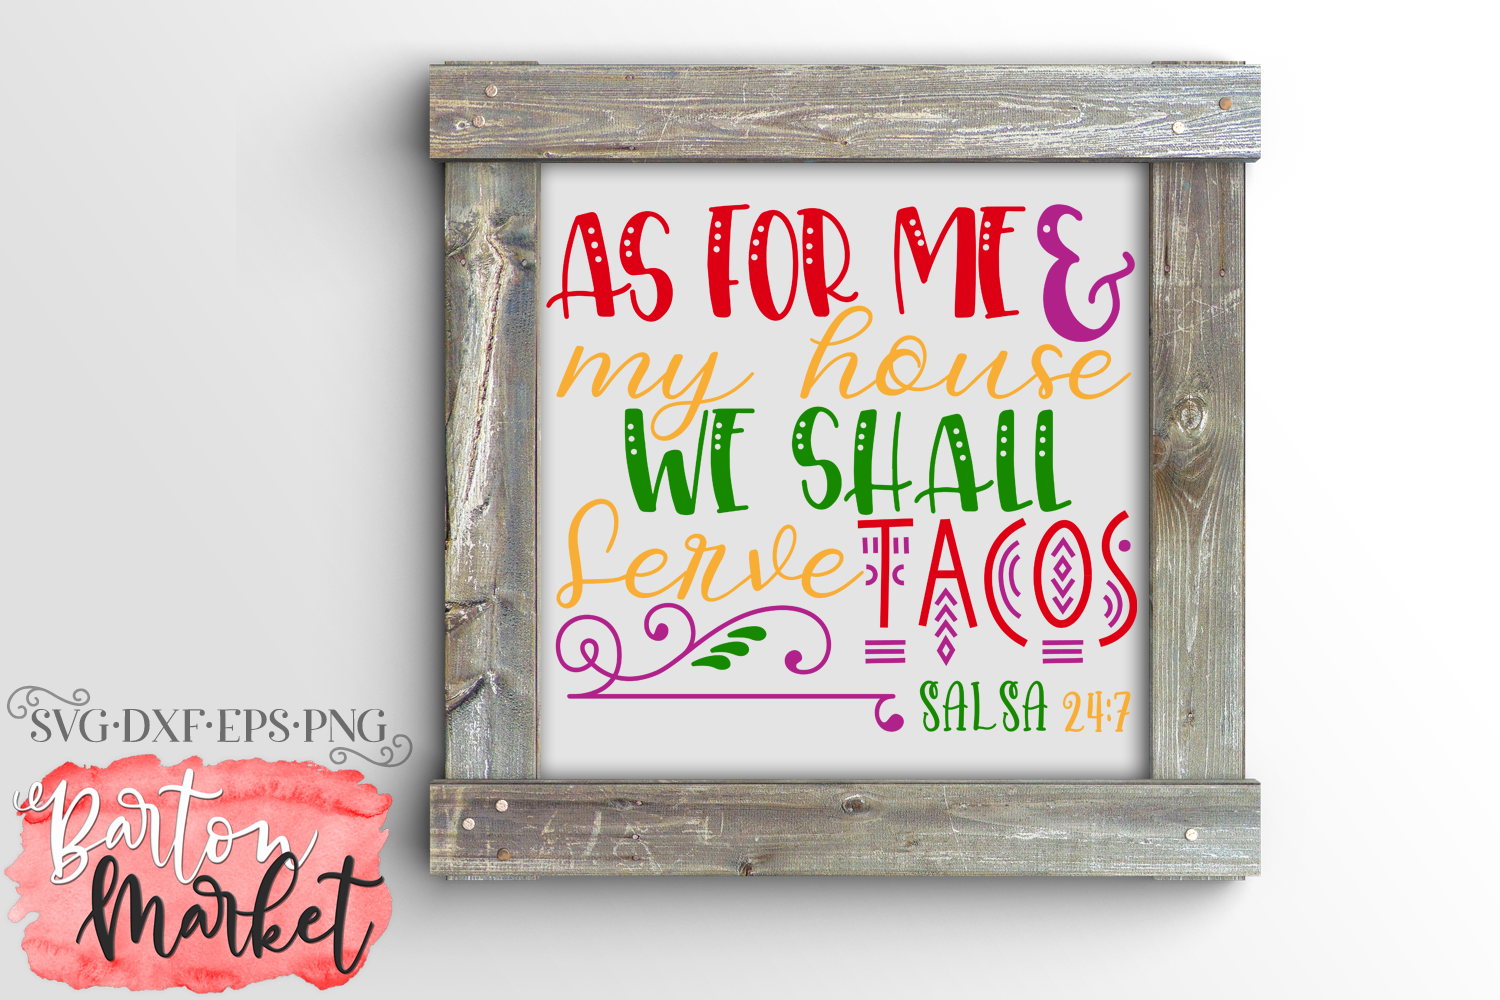 As For Me & My House We Shall Serve Tacos SVG DXF EPS PNG example image 2